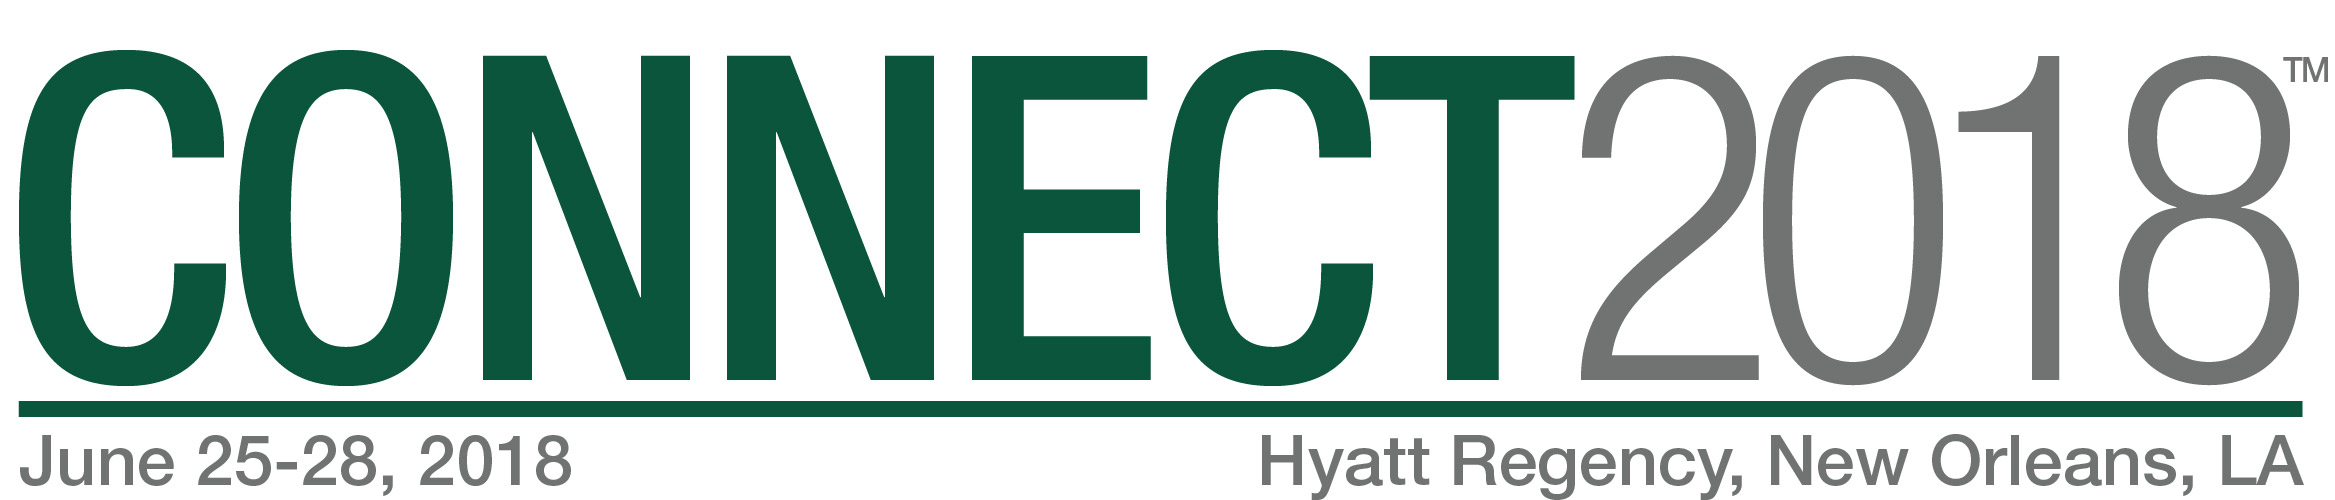 2018 CONNECT - Exhibitor Registration